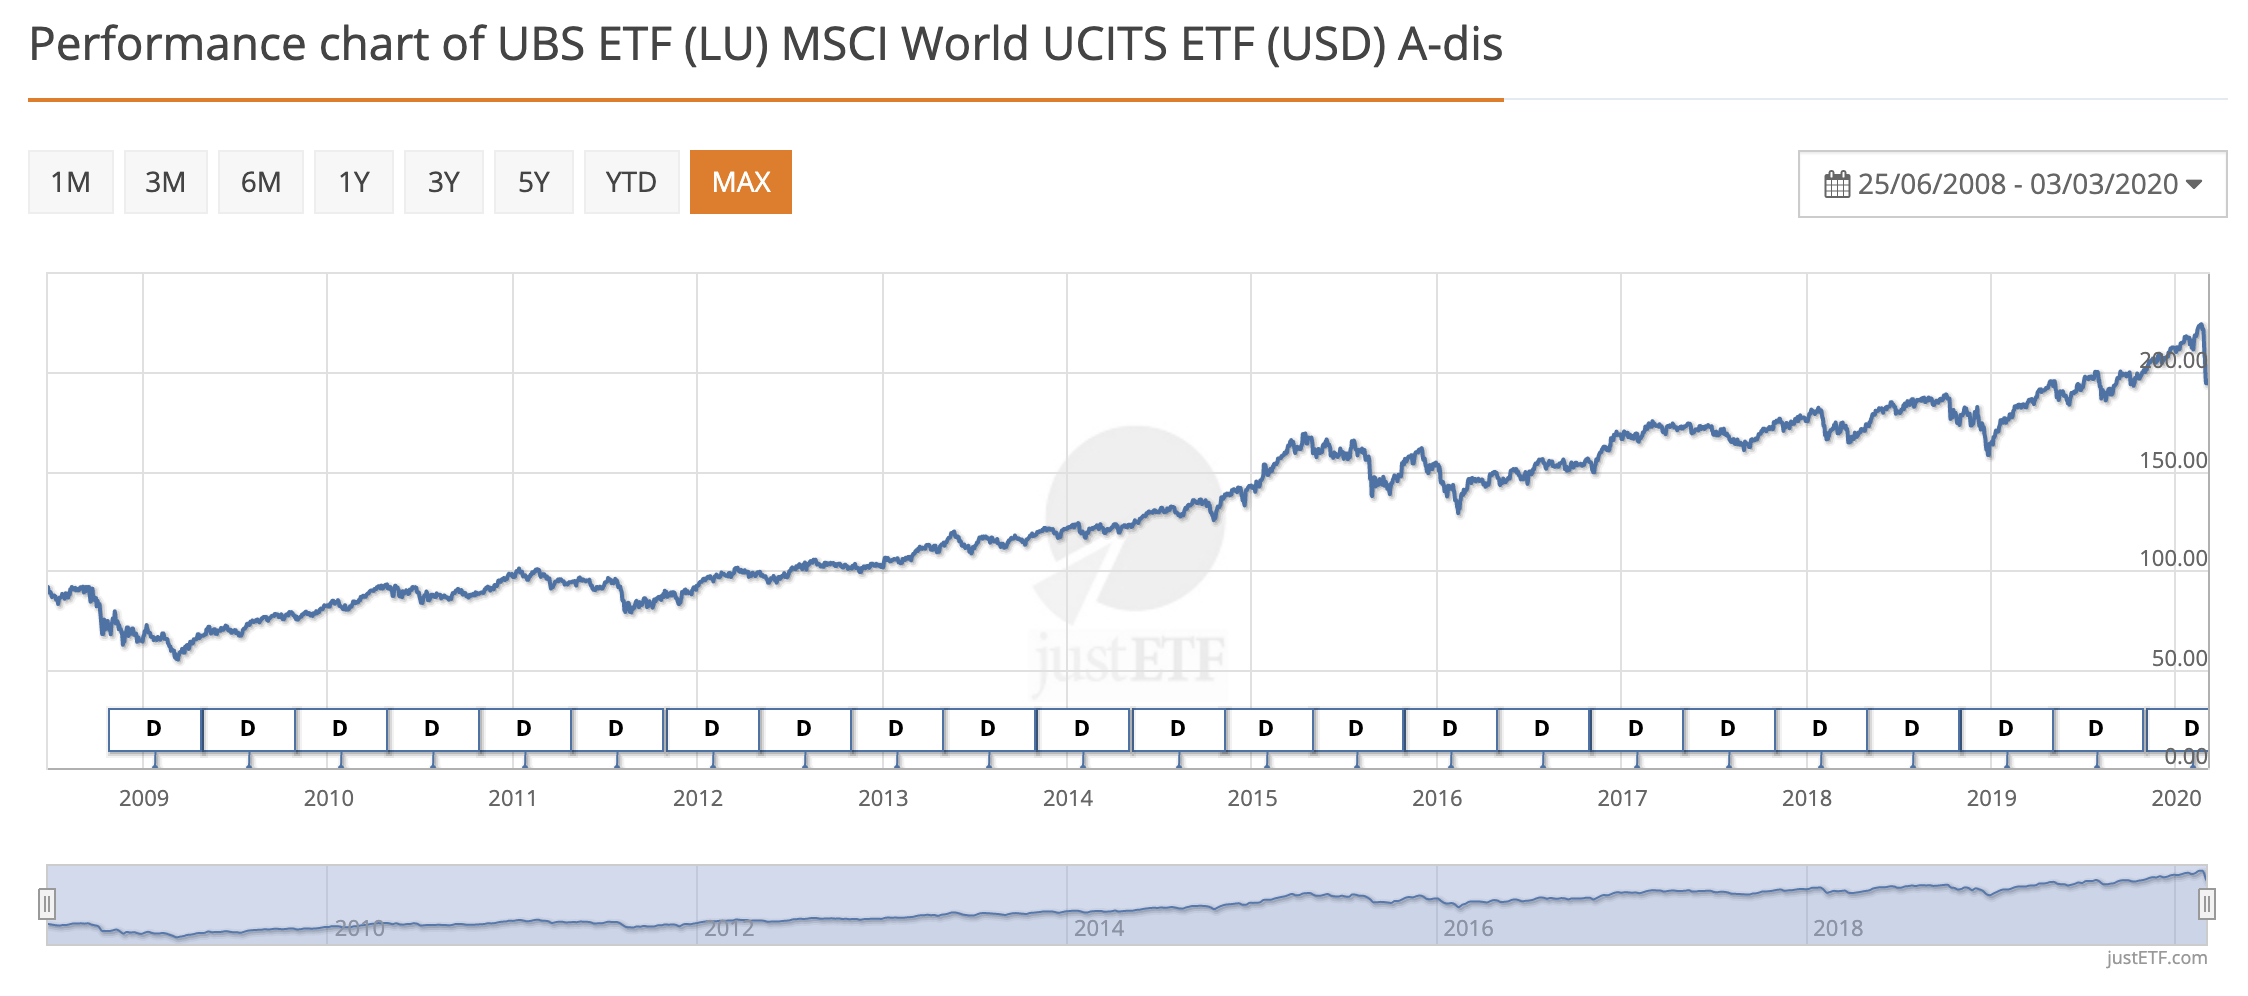 Performance chart of MSCI World UCITS ETF (c) justetf.com